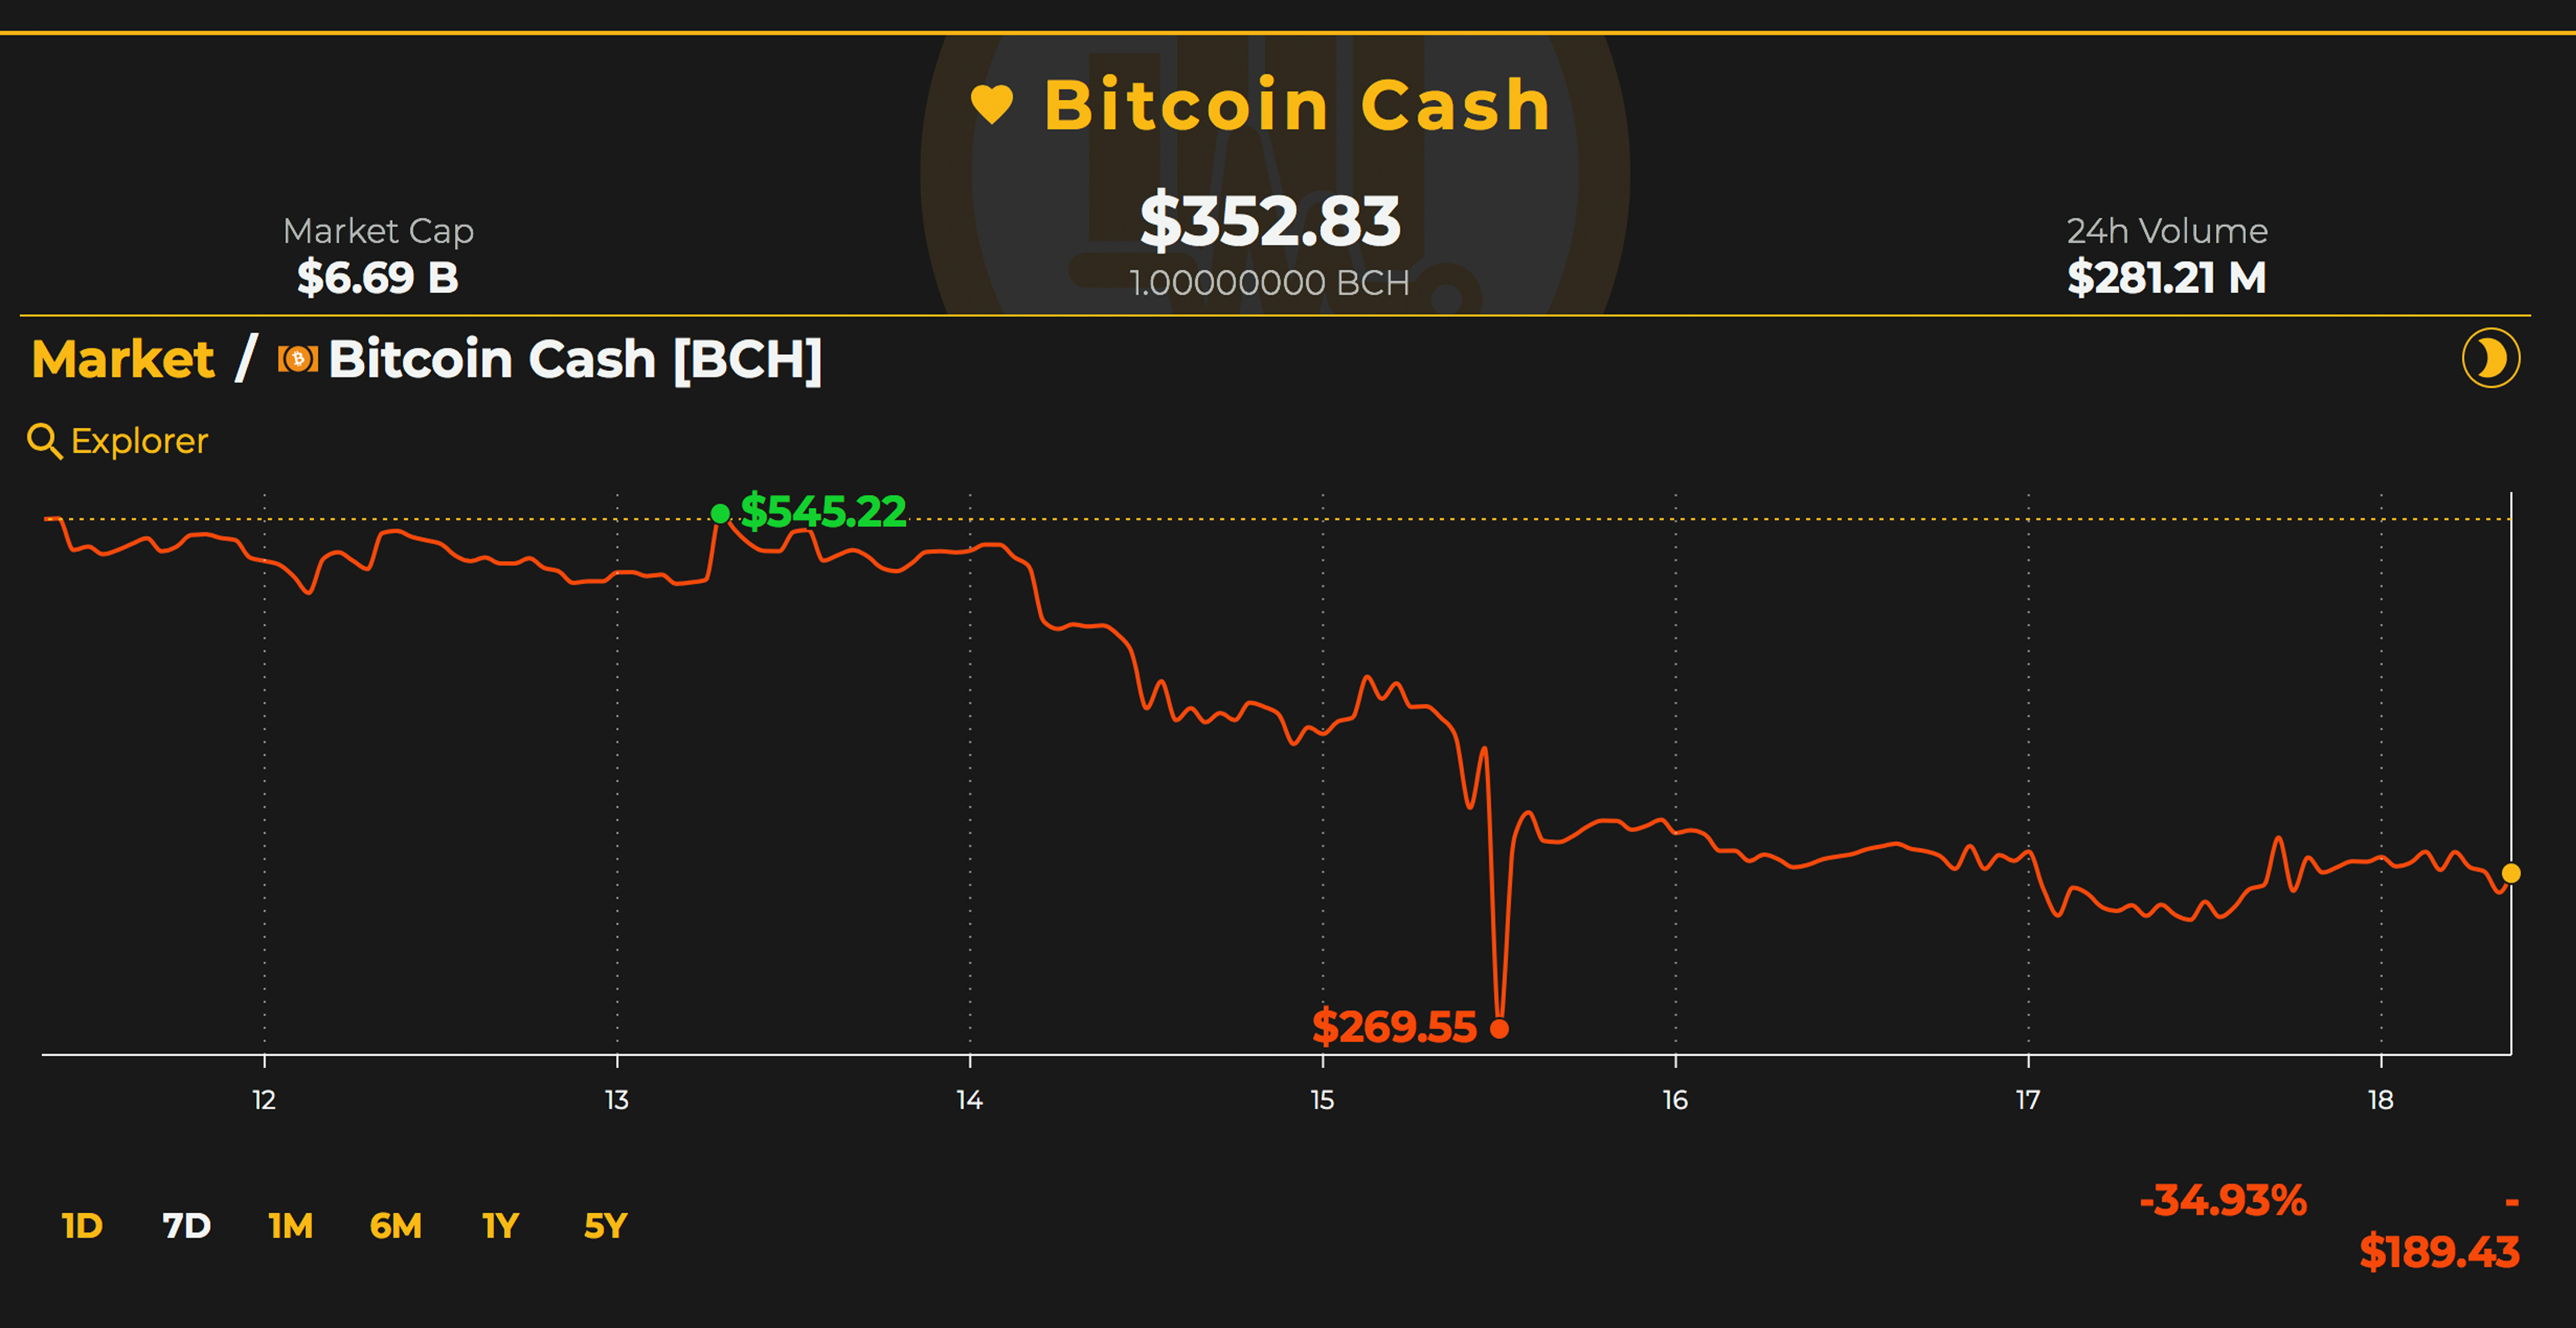 Markets Update: Traders Expecting Major BCH Action When Exchanges Open